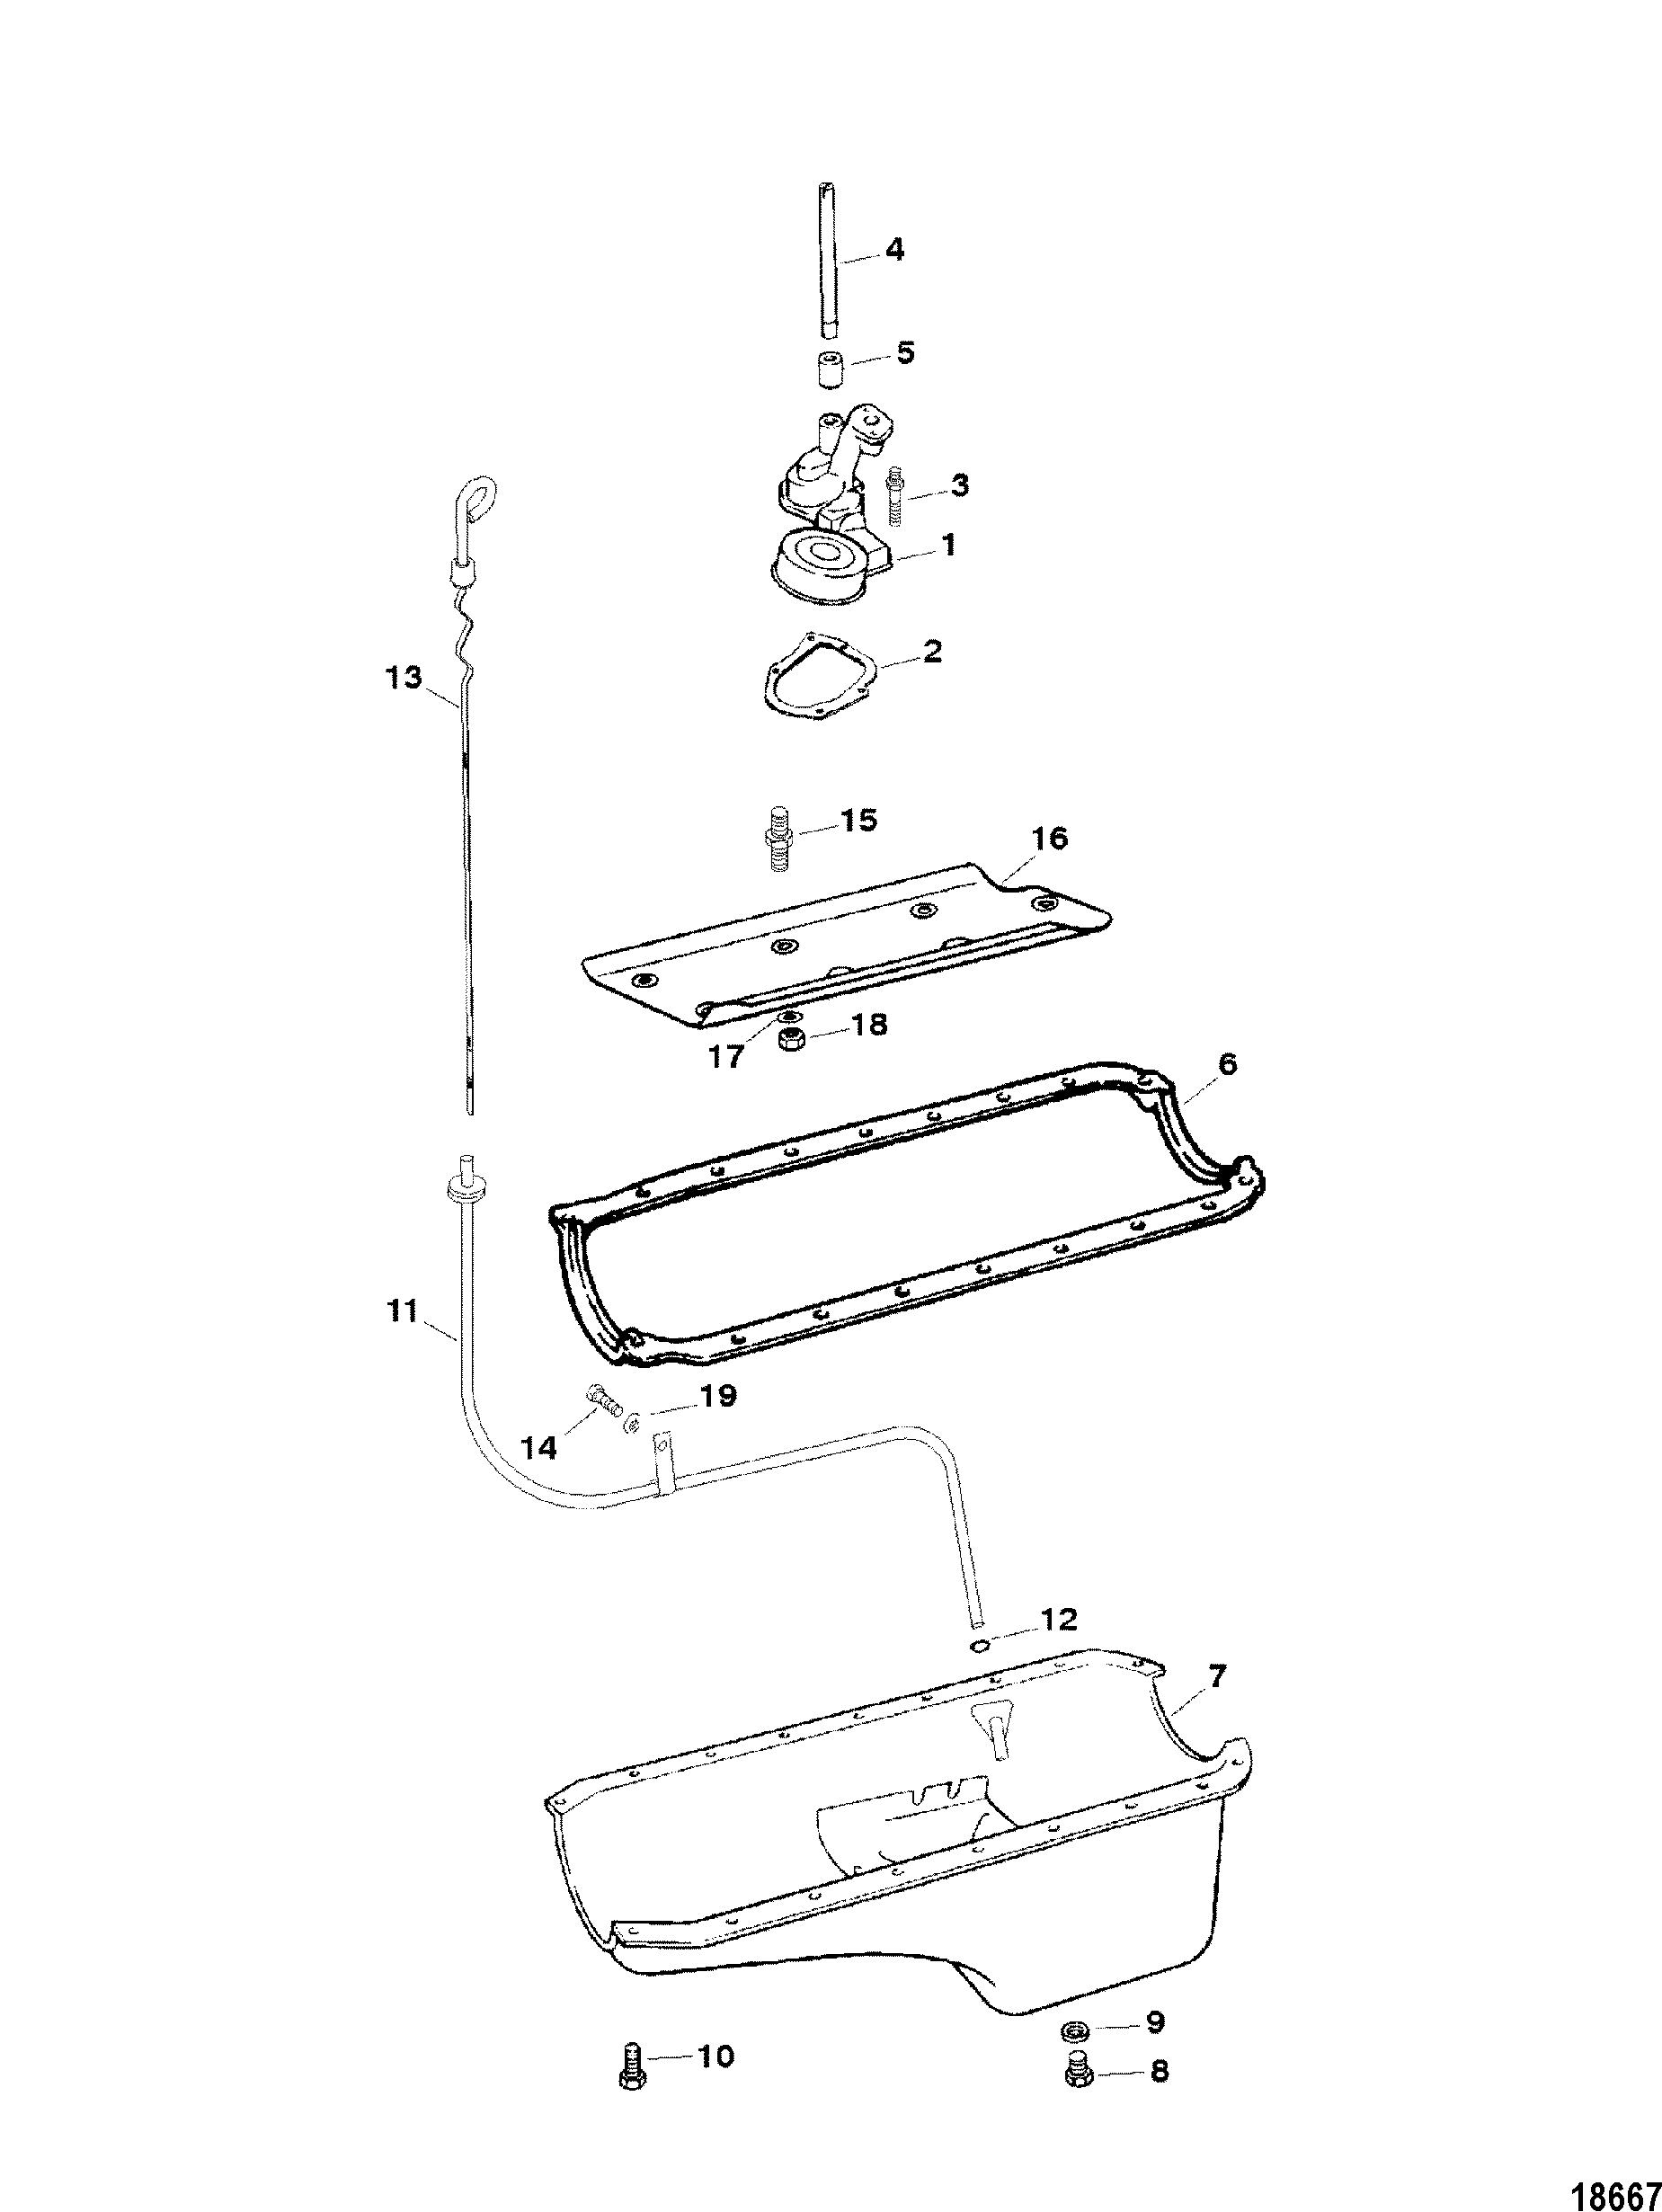 CP Performance - Oil Pan And Oil Pump